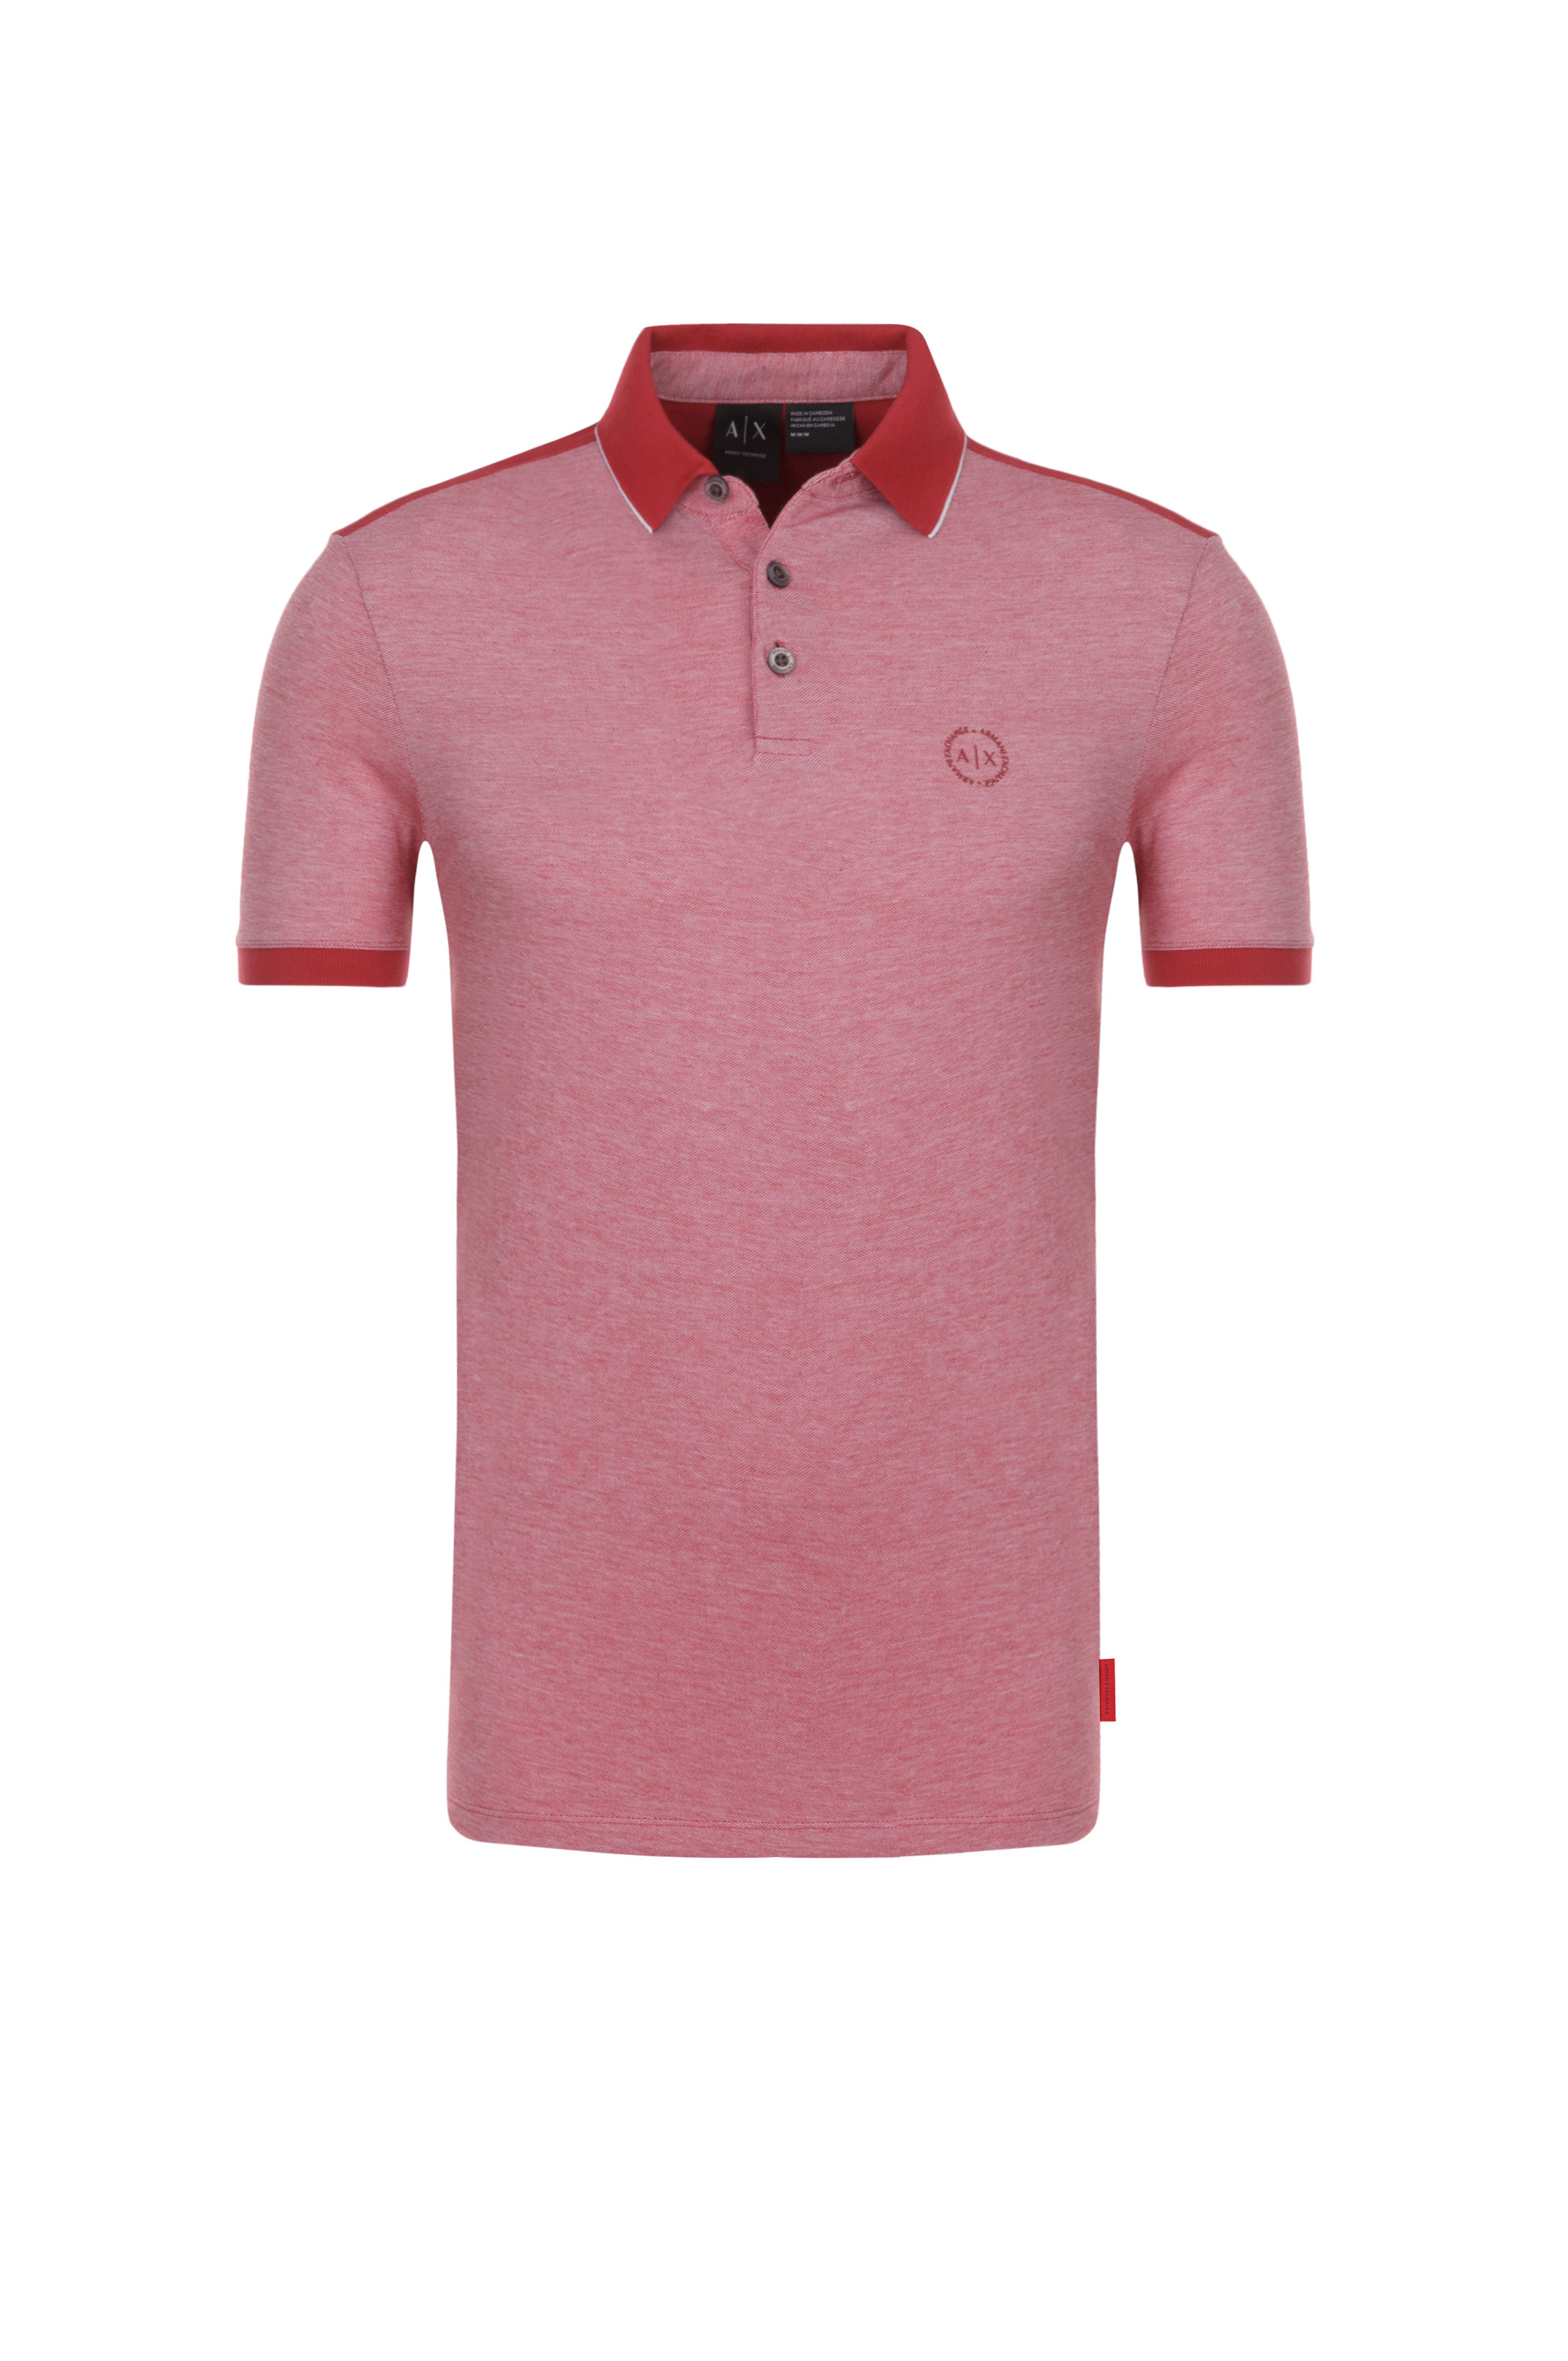 fe3f9b9c93 Polo shirt Armani Exchange